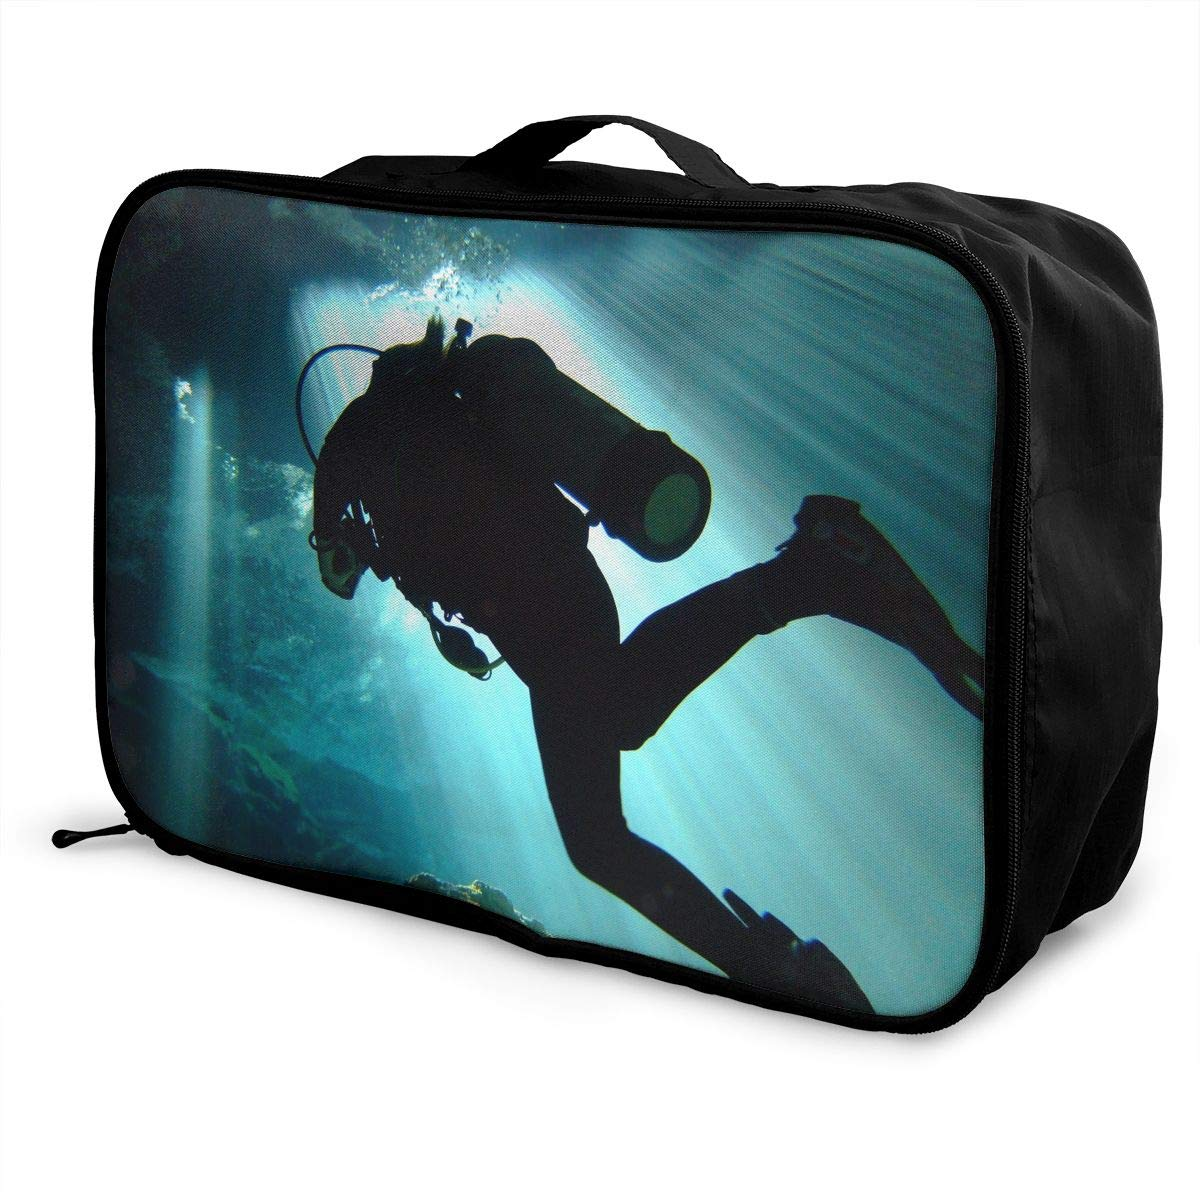 Travel Luggage Duffle Bag Lightweight Portable Handbag Diving Ocean Large Capacity Waterproof Storage Tote